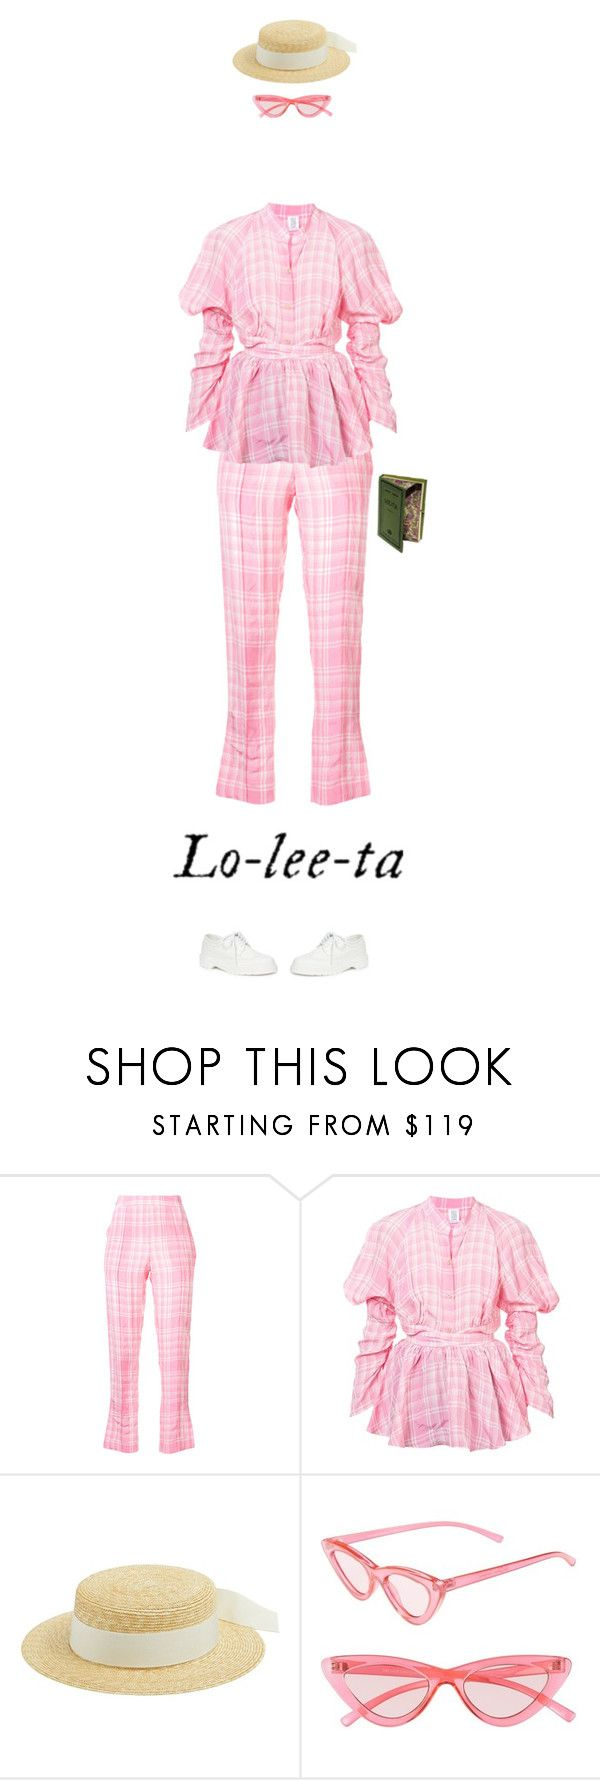 """""""Lolita"""" by andreearaiciu ❤ liked on Polyvore featuring Rosie Assoulin, Federica Moretti, Le Specs, Dr. Martens and Olympia Le-Tan"""